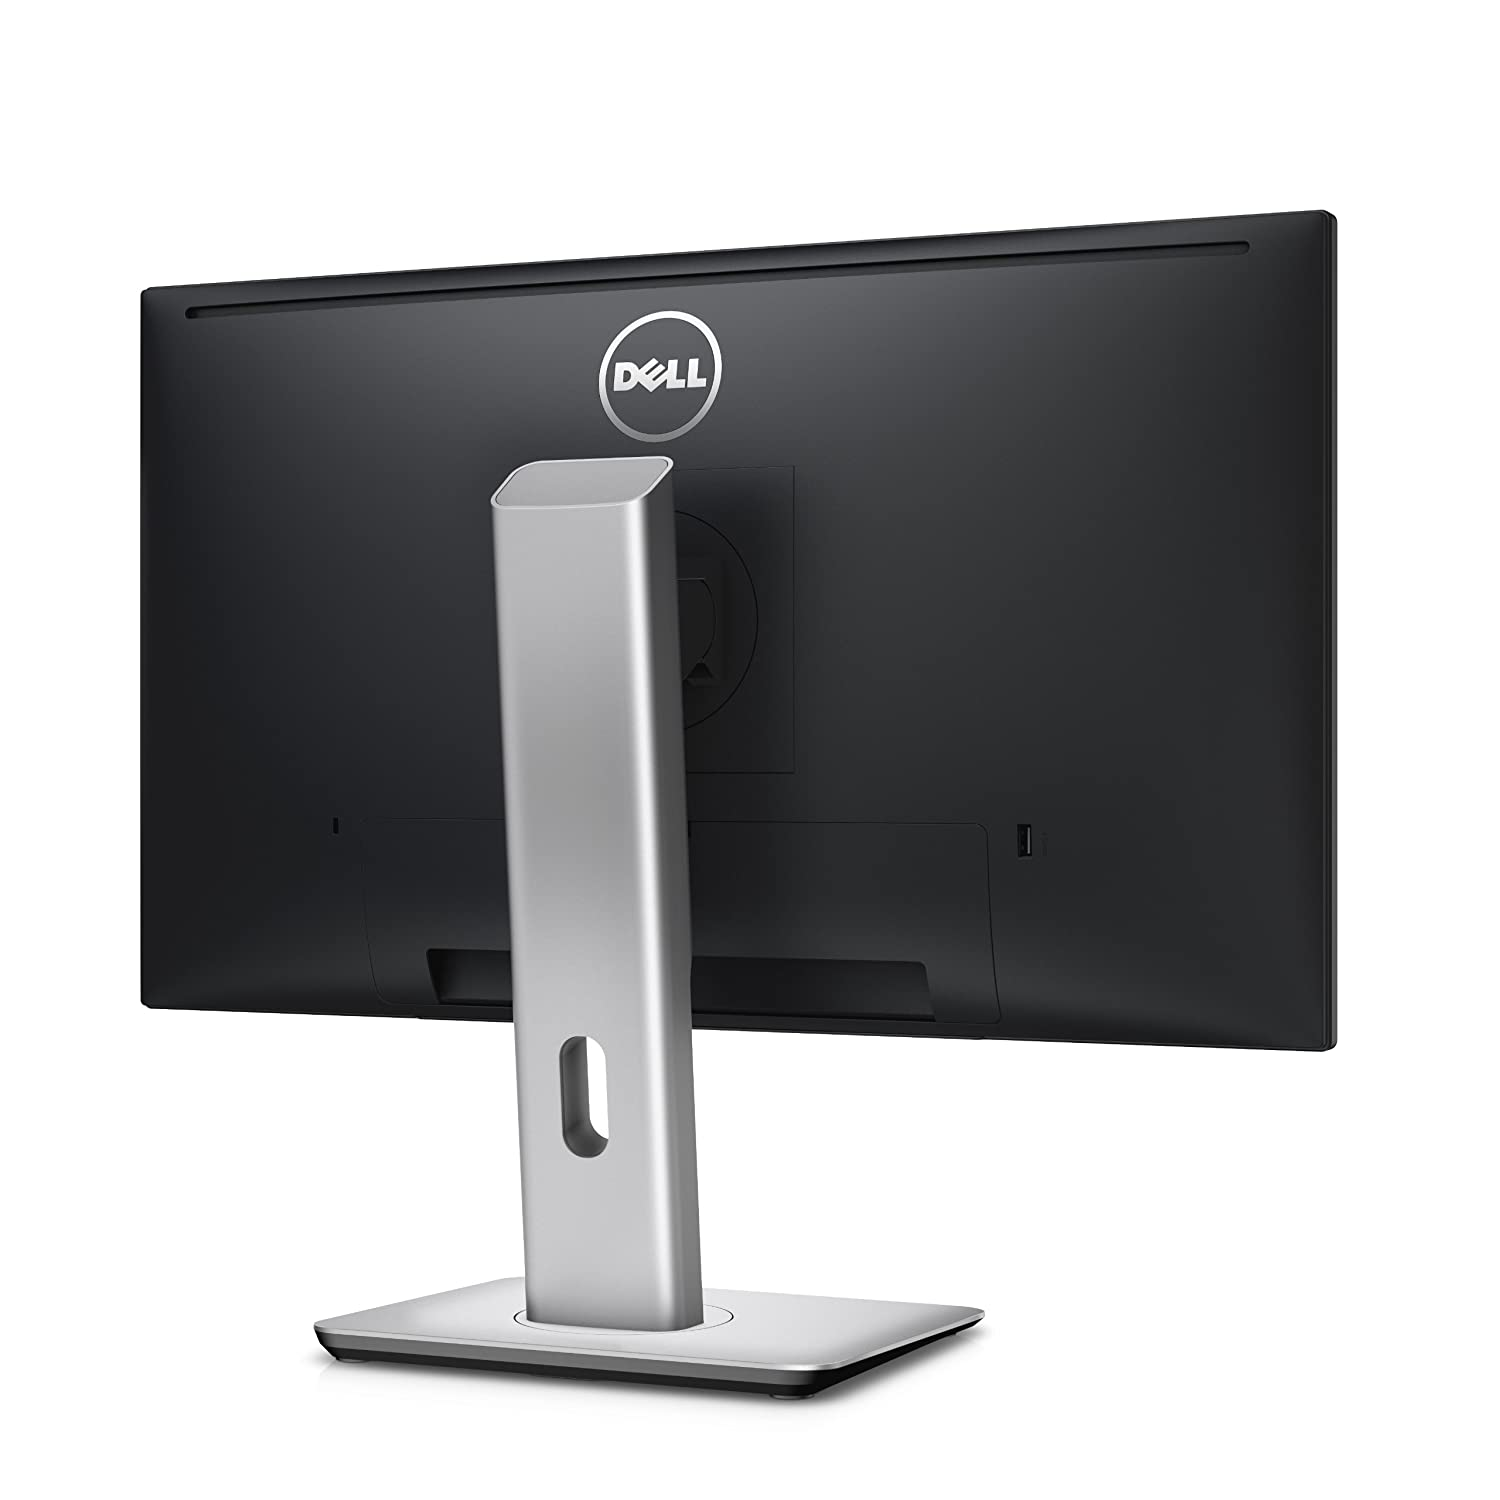 Amazon.in  Buy Dell U2414H 23.8-inch LED Backlit Computer Monitor Online at Low  Prices in India  df3b4f0bb3